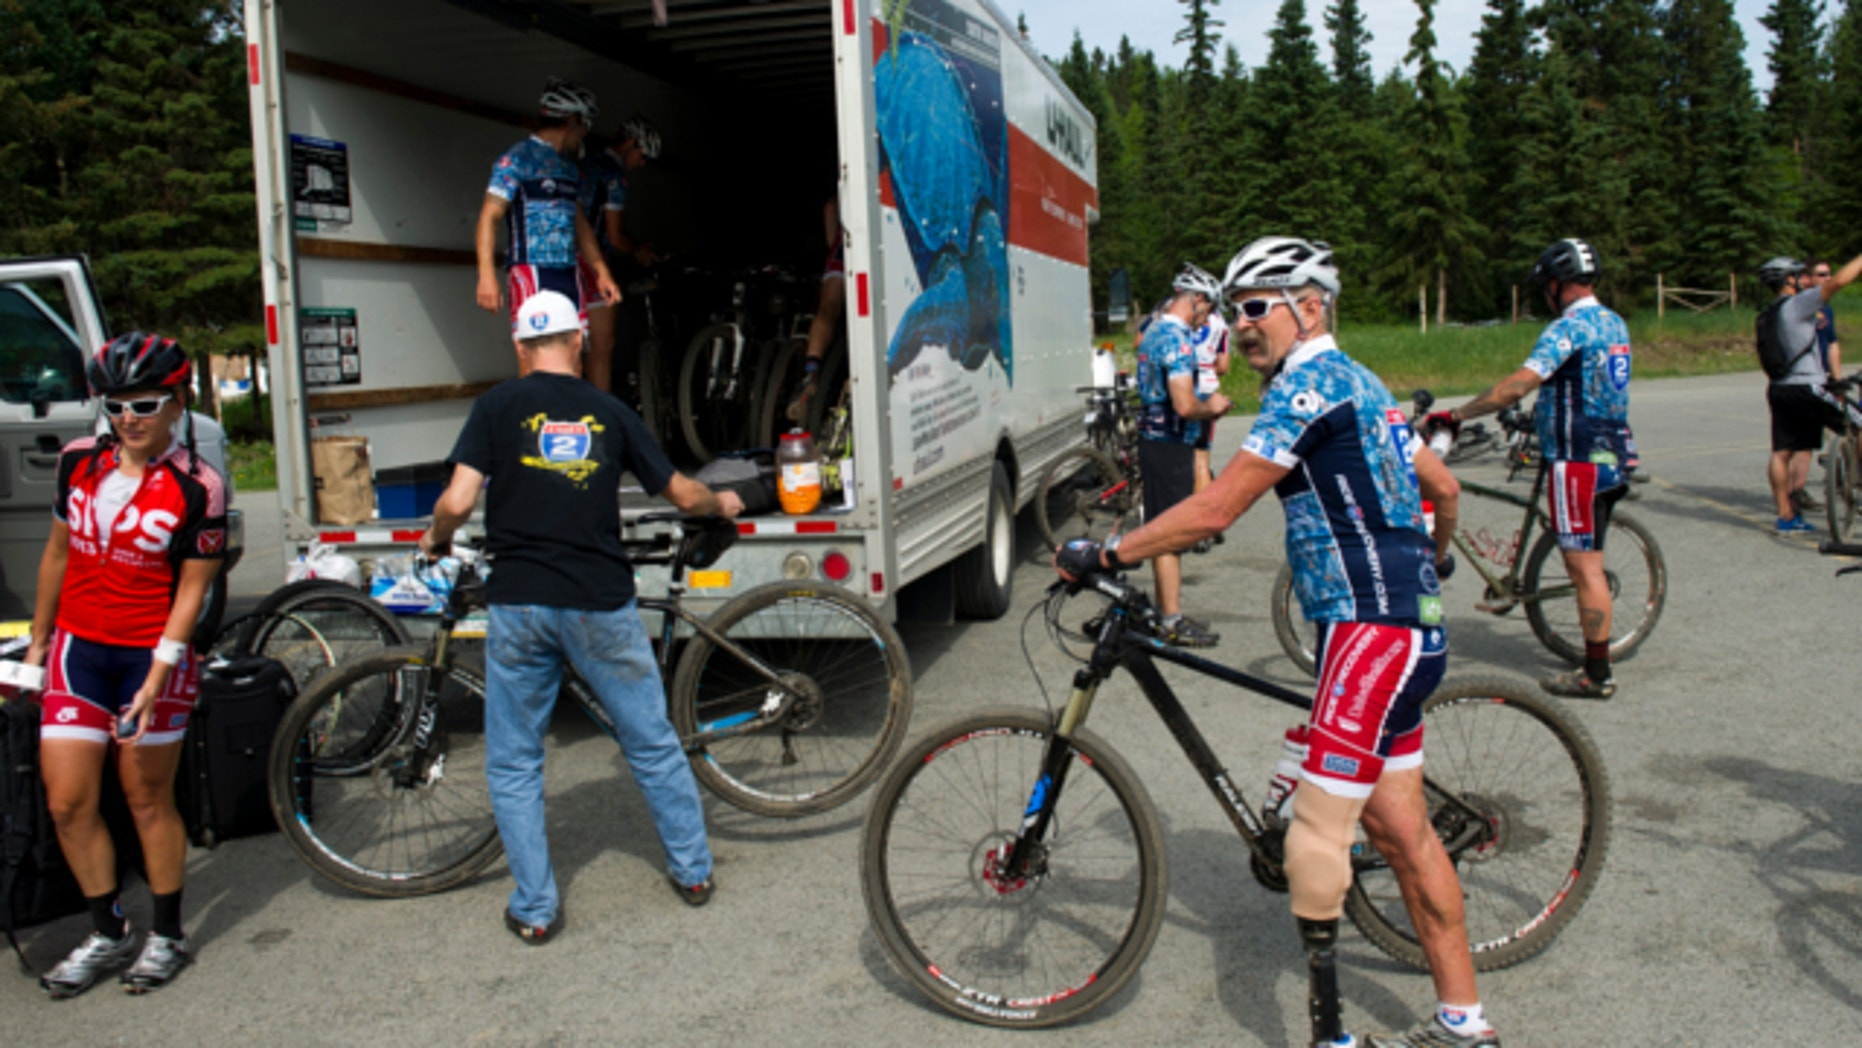 June 25, 2013: Mountain bikers in the Ride 2 Recovery group finish a ride on the Anchorage Hillside.